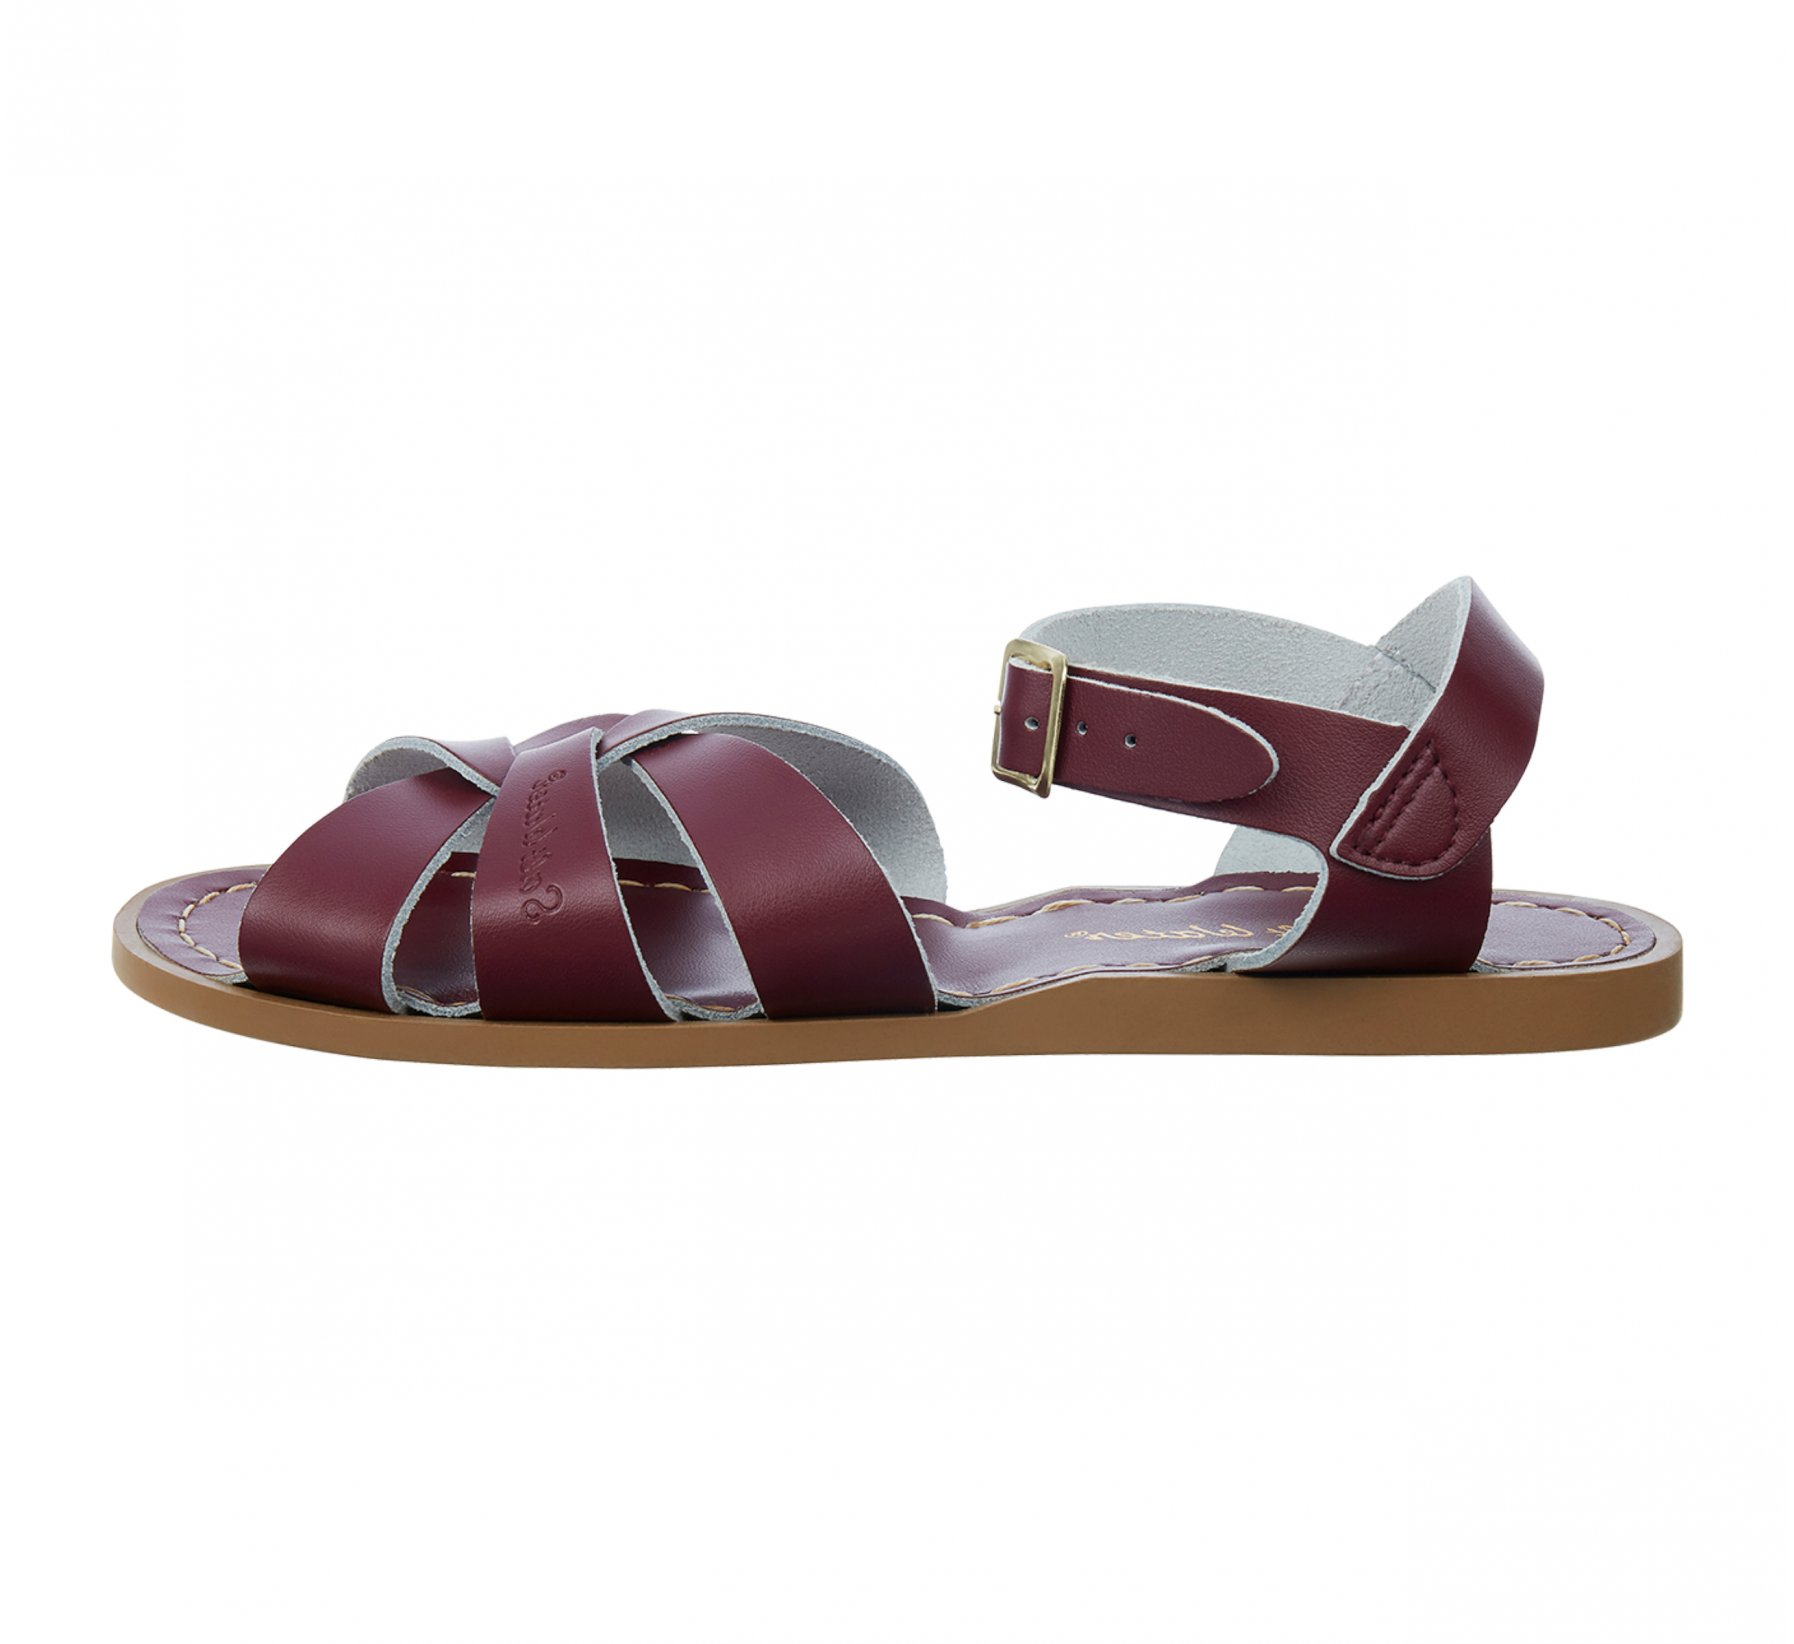 Original Bordeaux - Salt Water Sandals